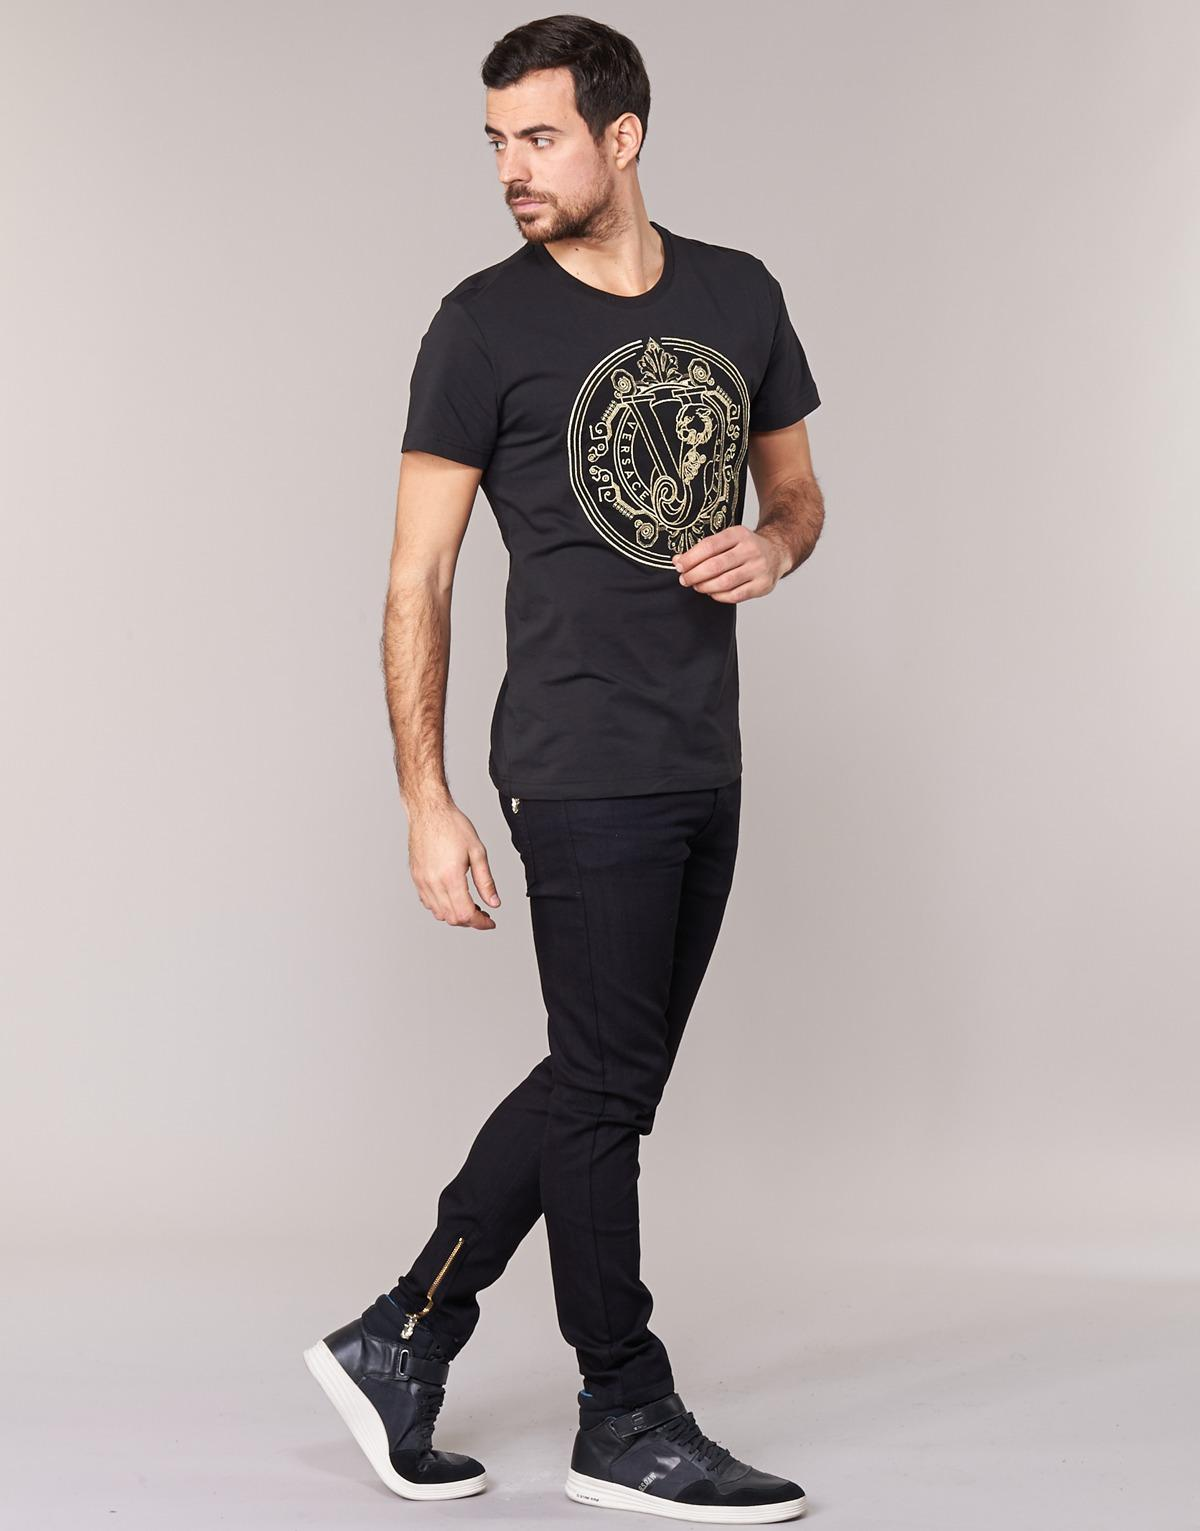 Versace Jeans Couture Denim A2gpa007 Skinny Jeans in Black for Men - Save 17%